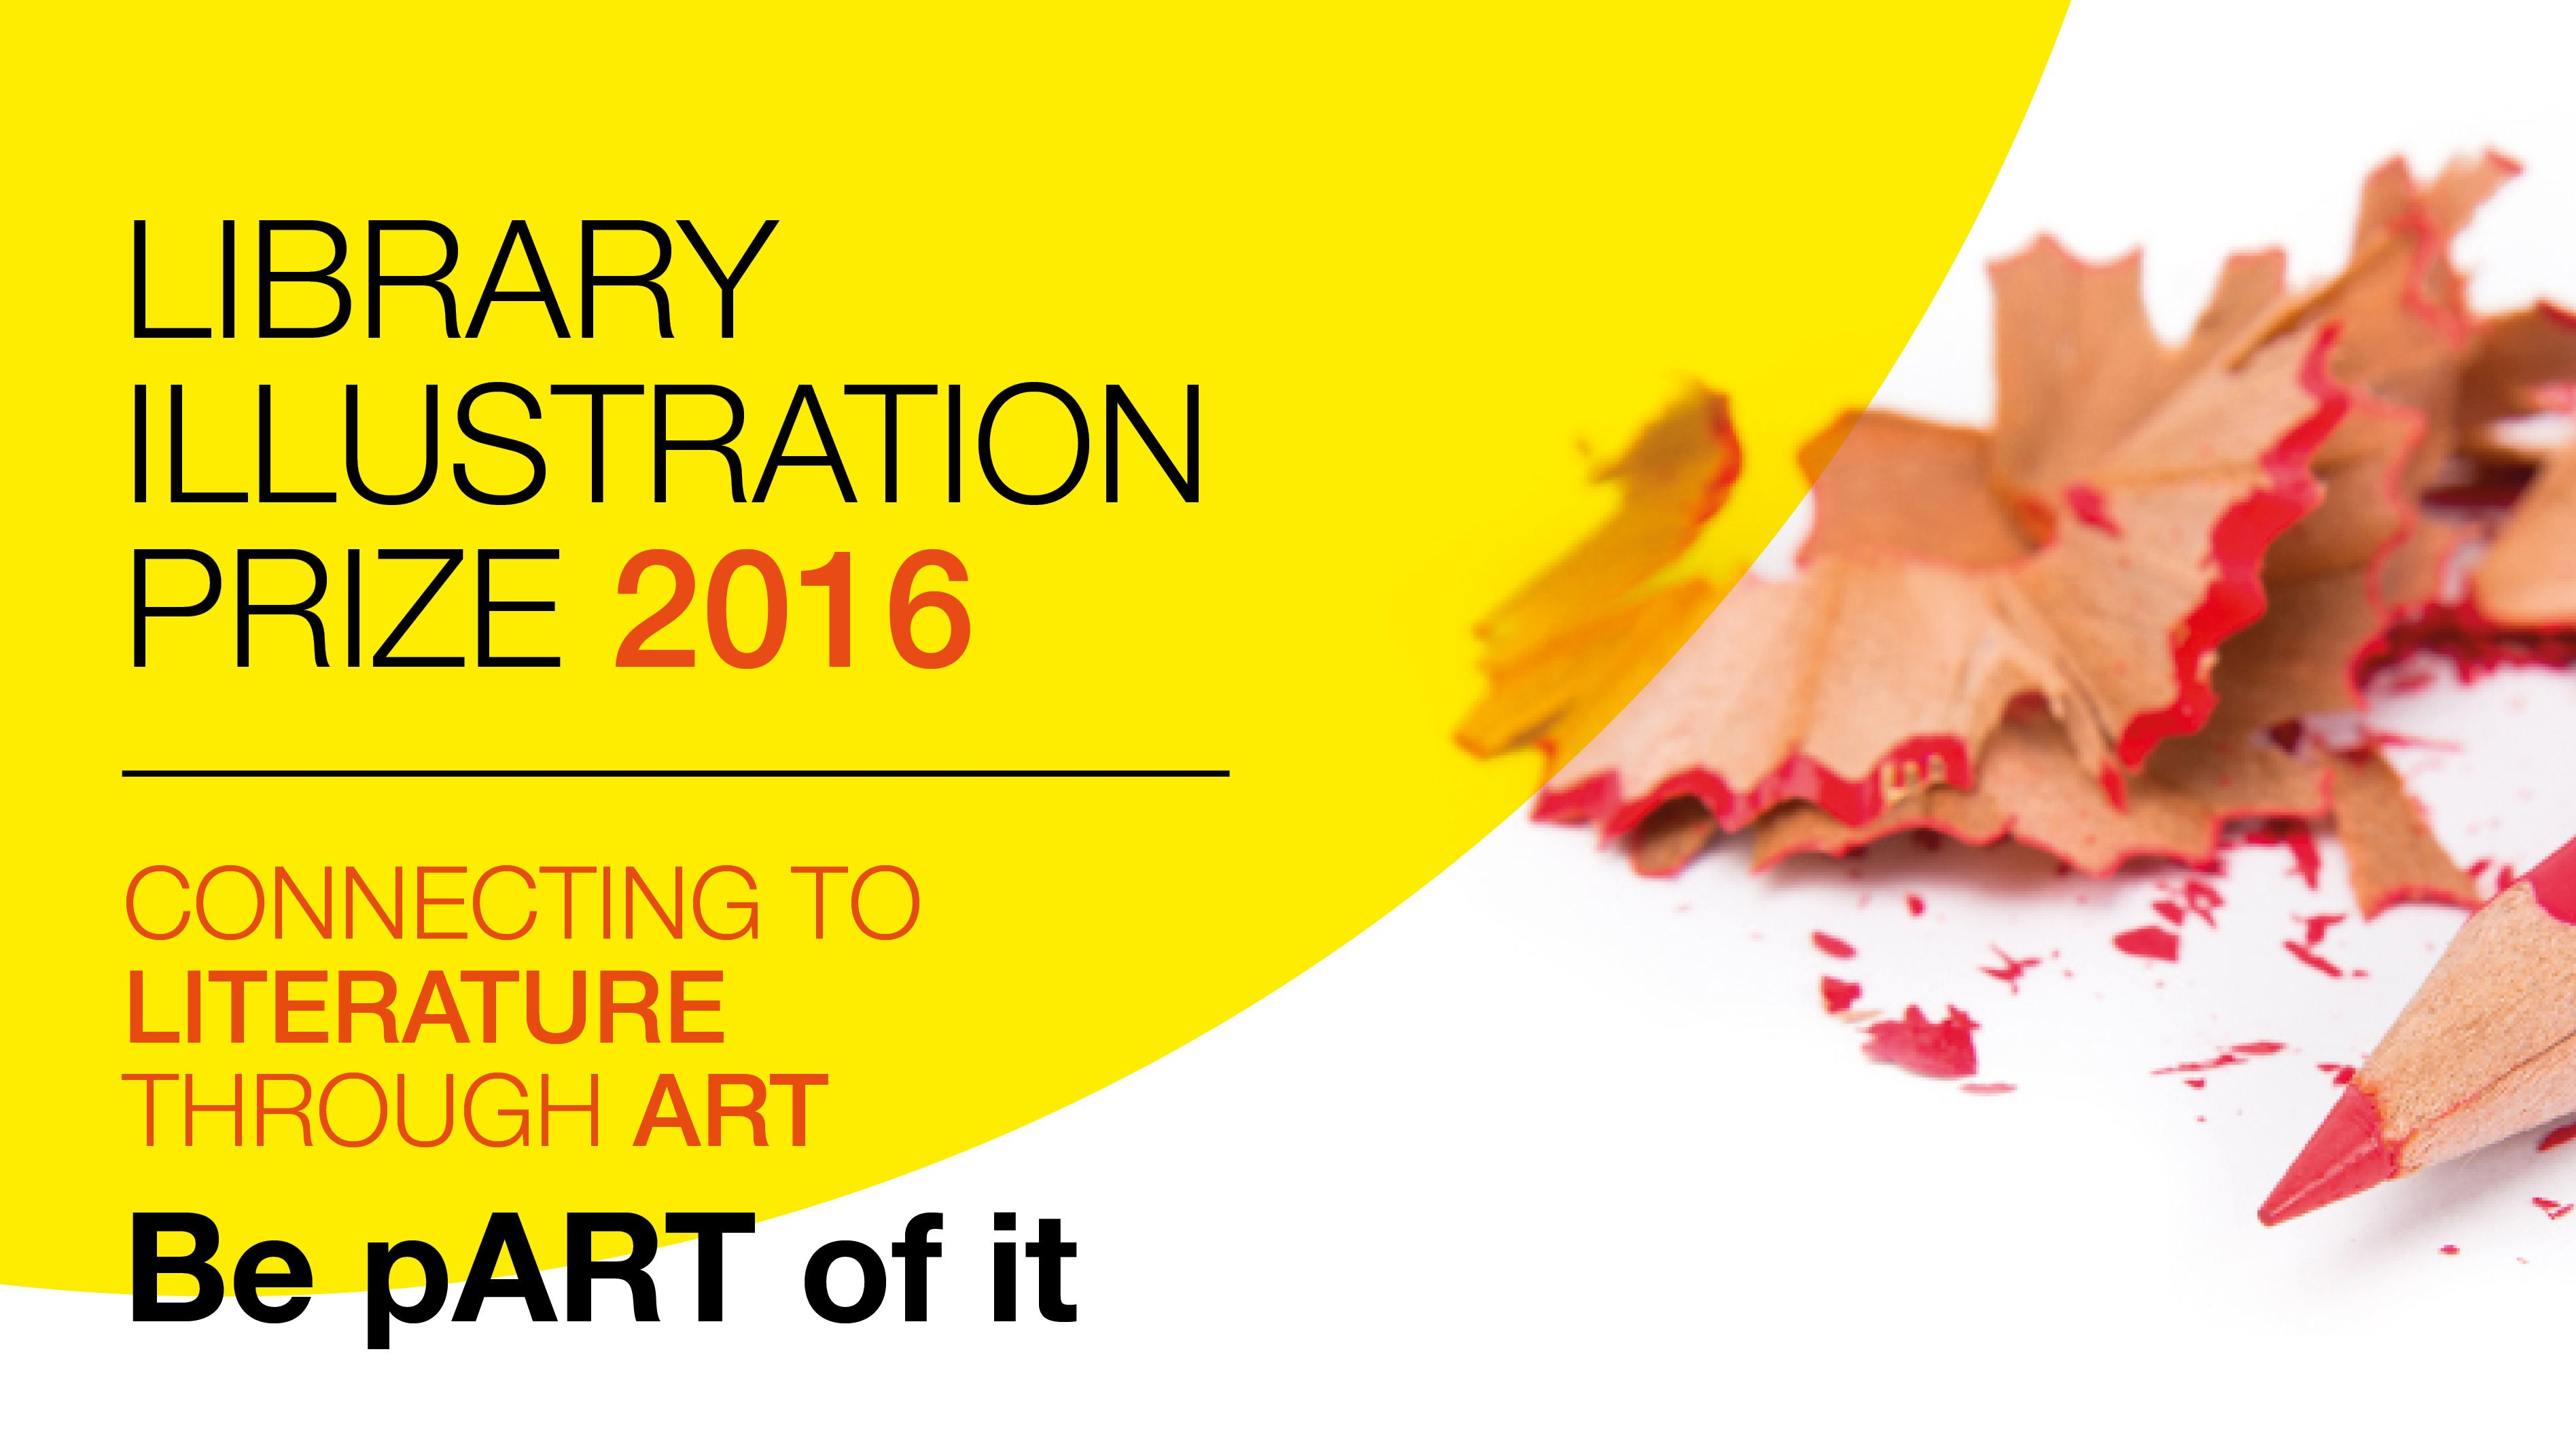 Library Illustration Prize 2016